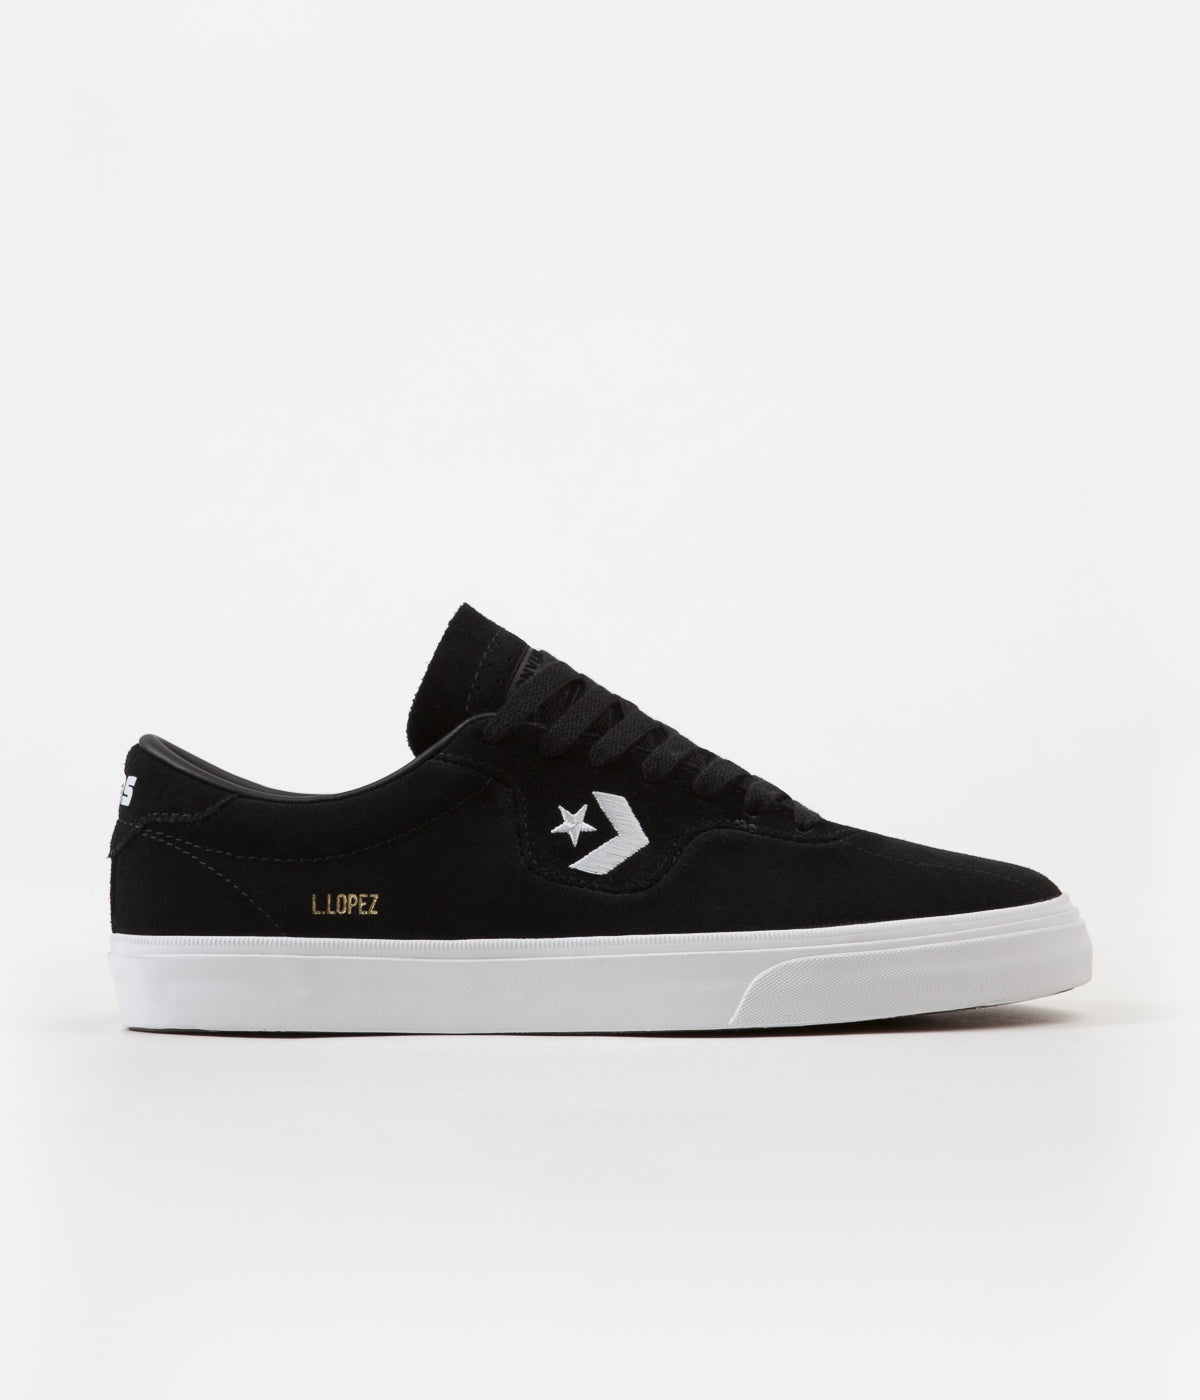 e4965cac744b Converse Louie Lopez Pro Ox Shoes - Black   Black   White